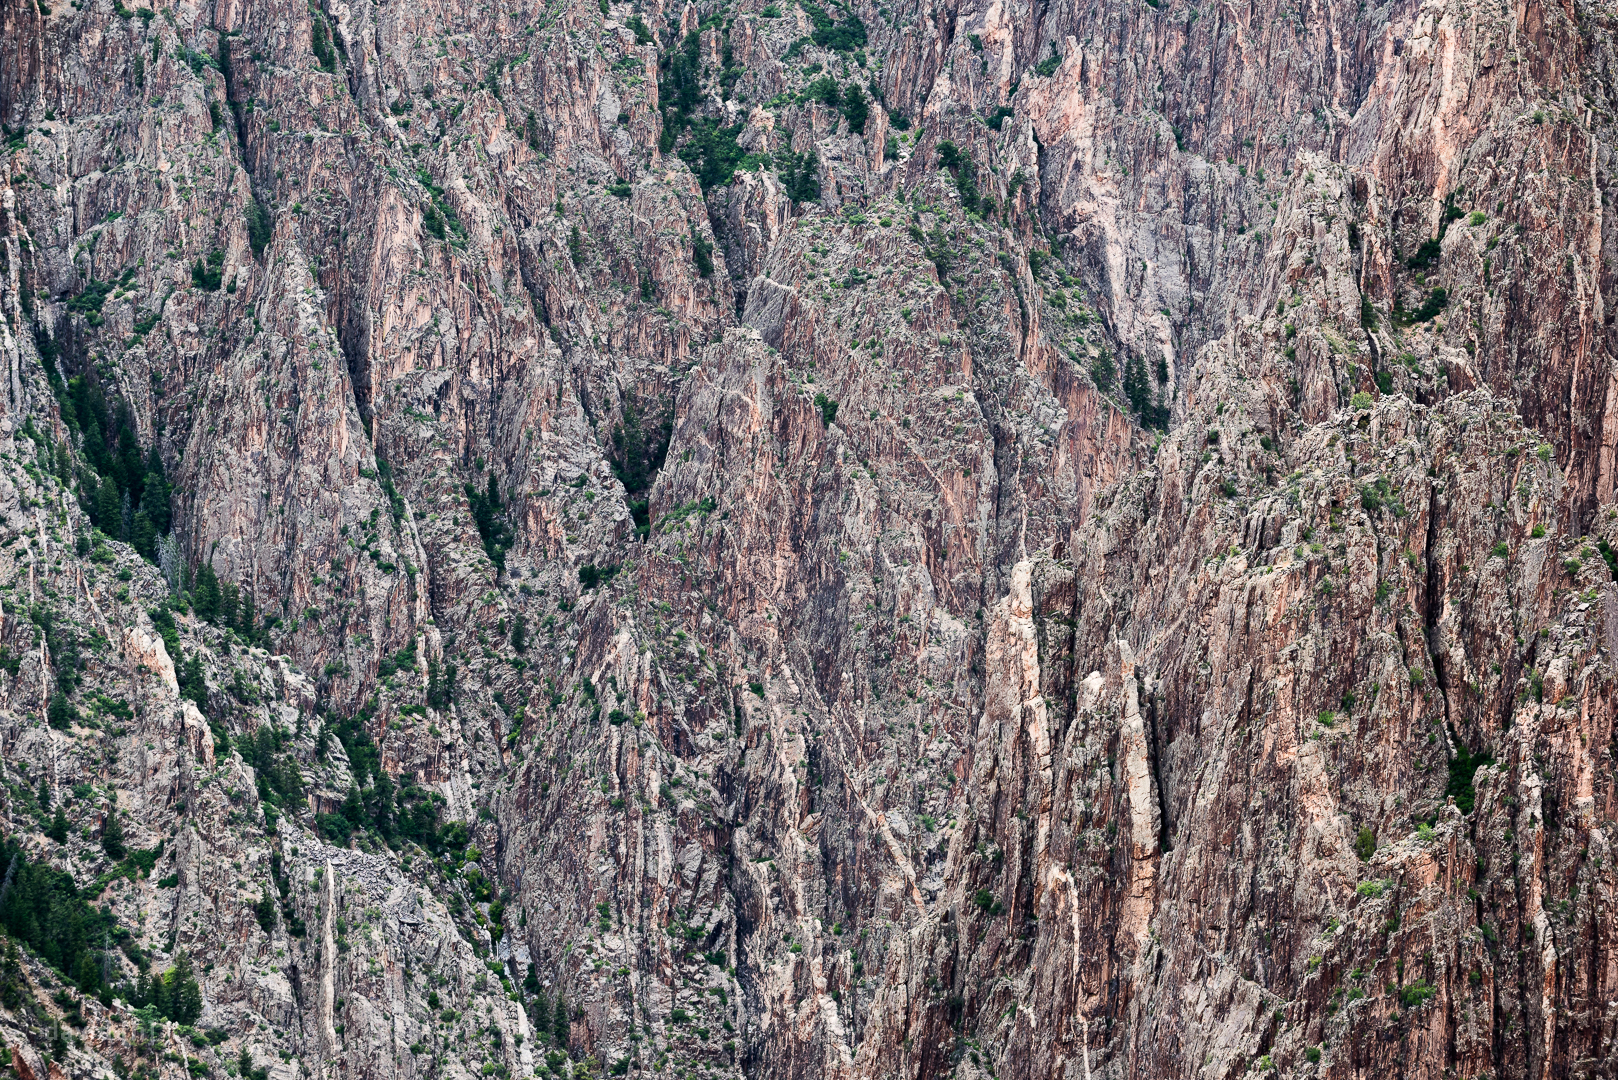 The jagged cliffs of the Black Canyon of the Gunnison.